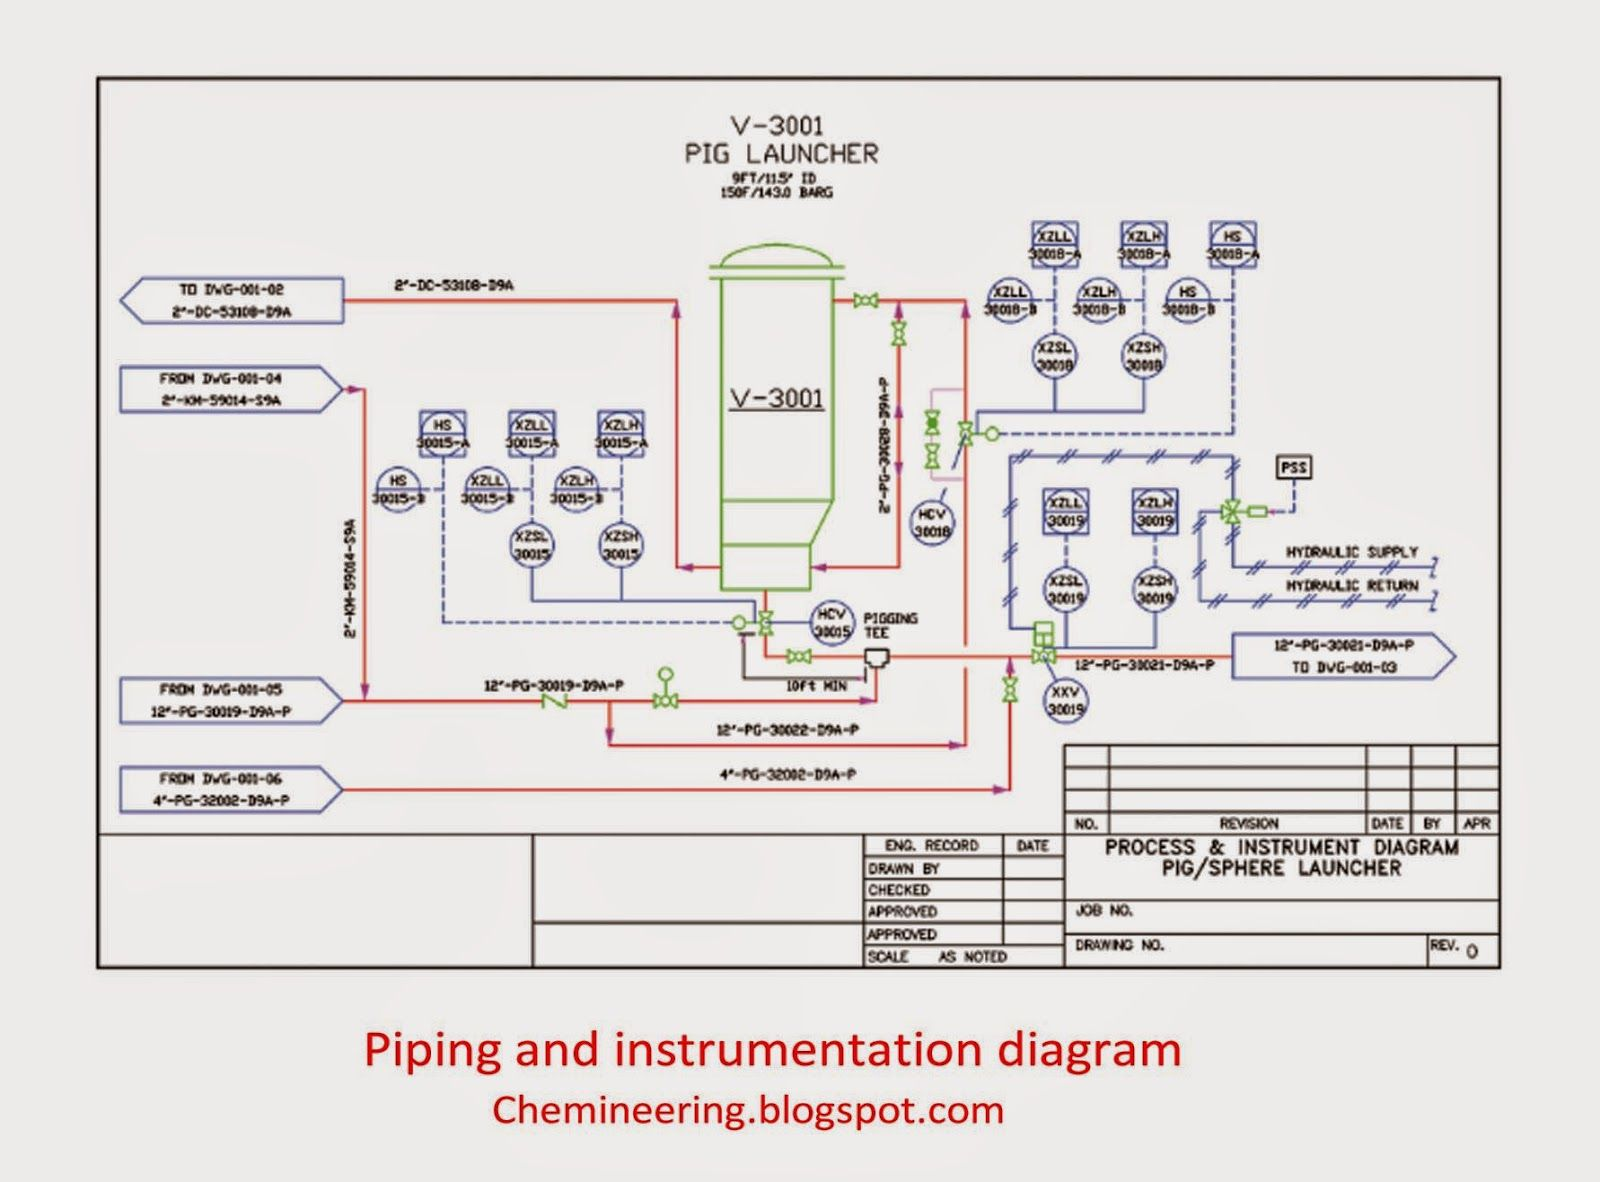 piping and instrumentation diagram by chemineering blogspot com piping instrumentation diagram pdf piping instrumentation diagram [ 1600 x 1182 Pixel ]